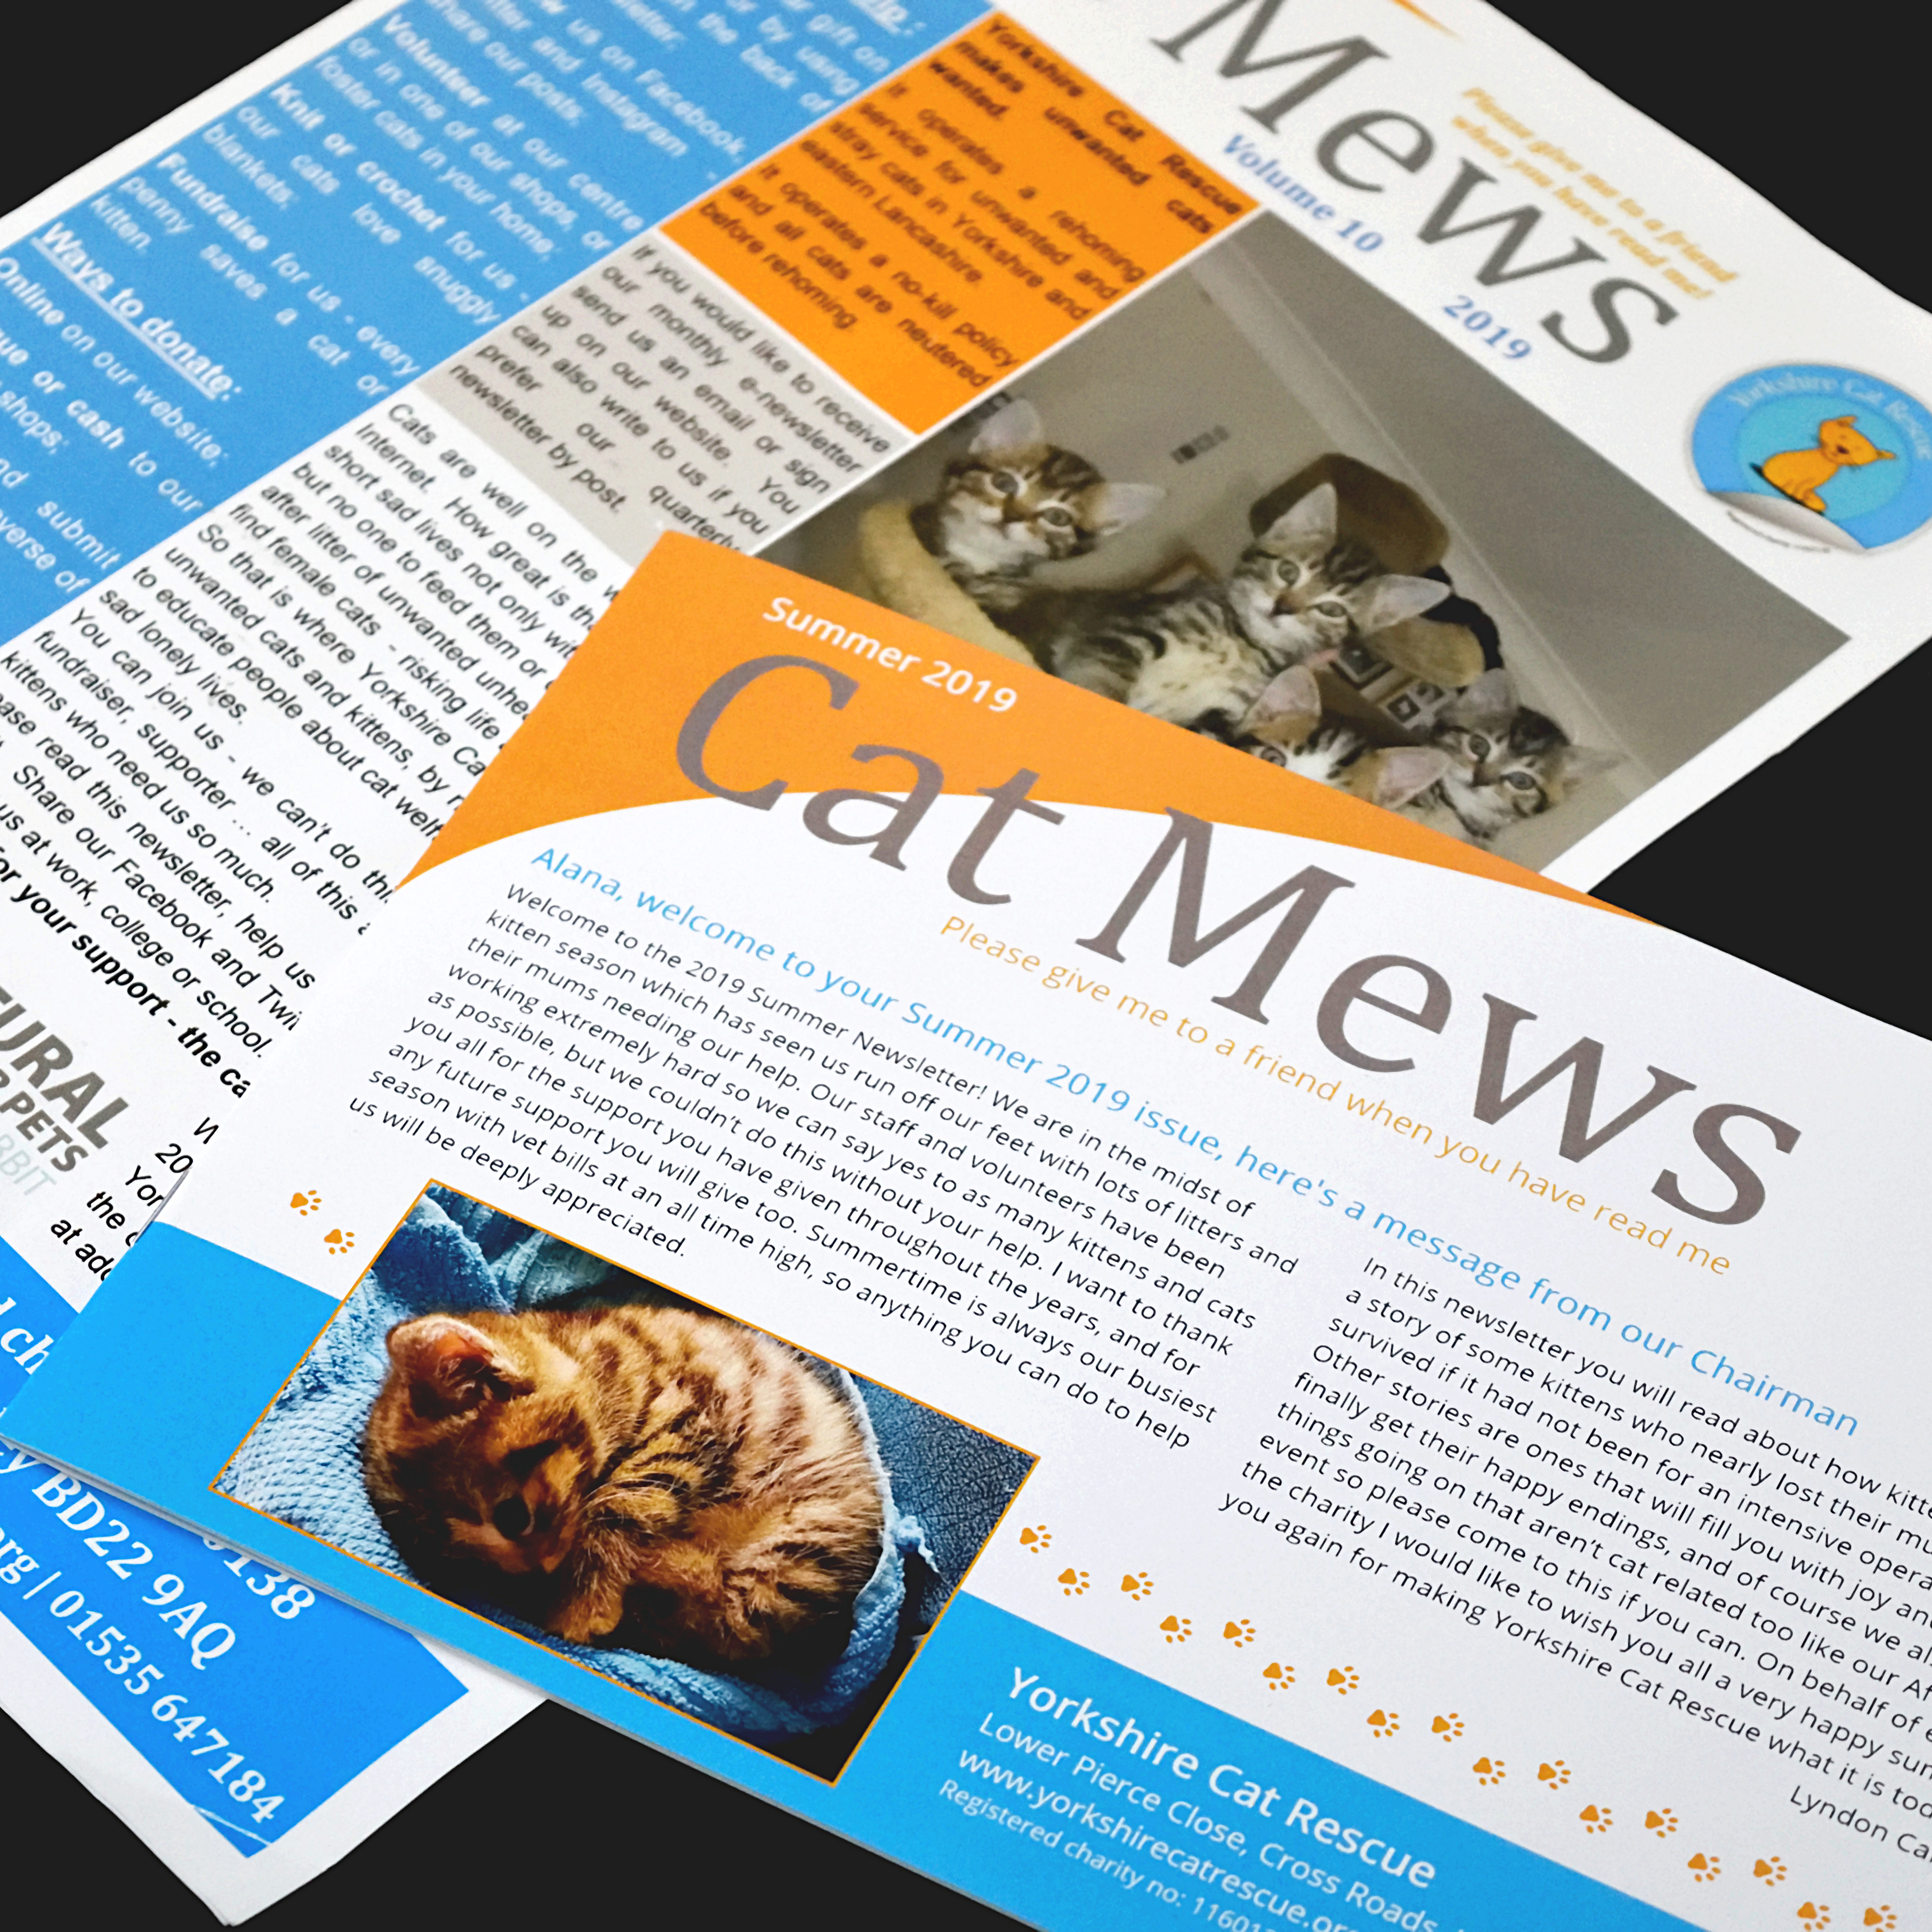 the two newsletters side by side